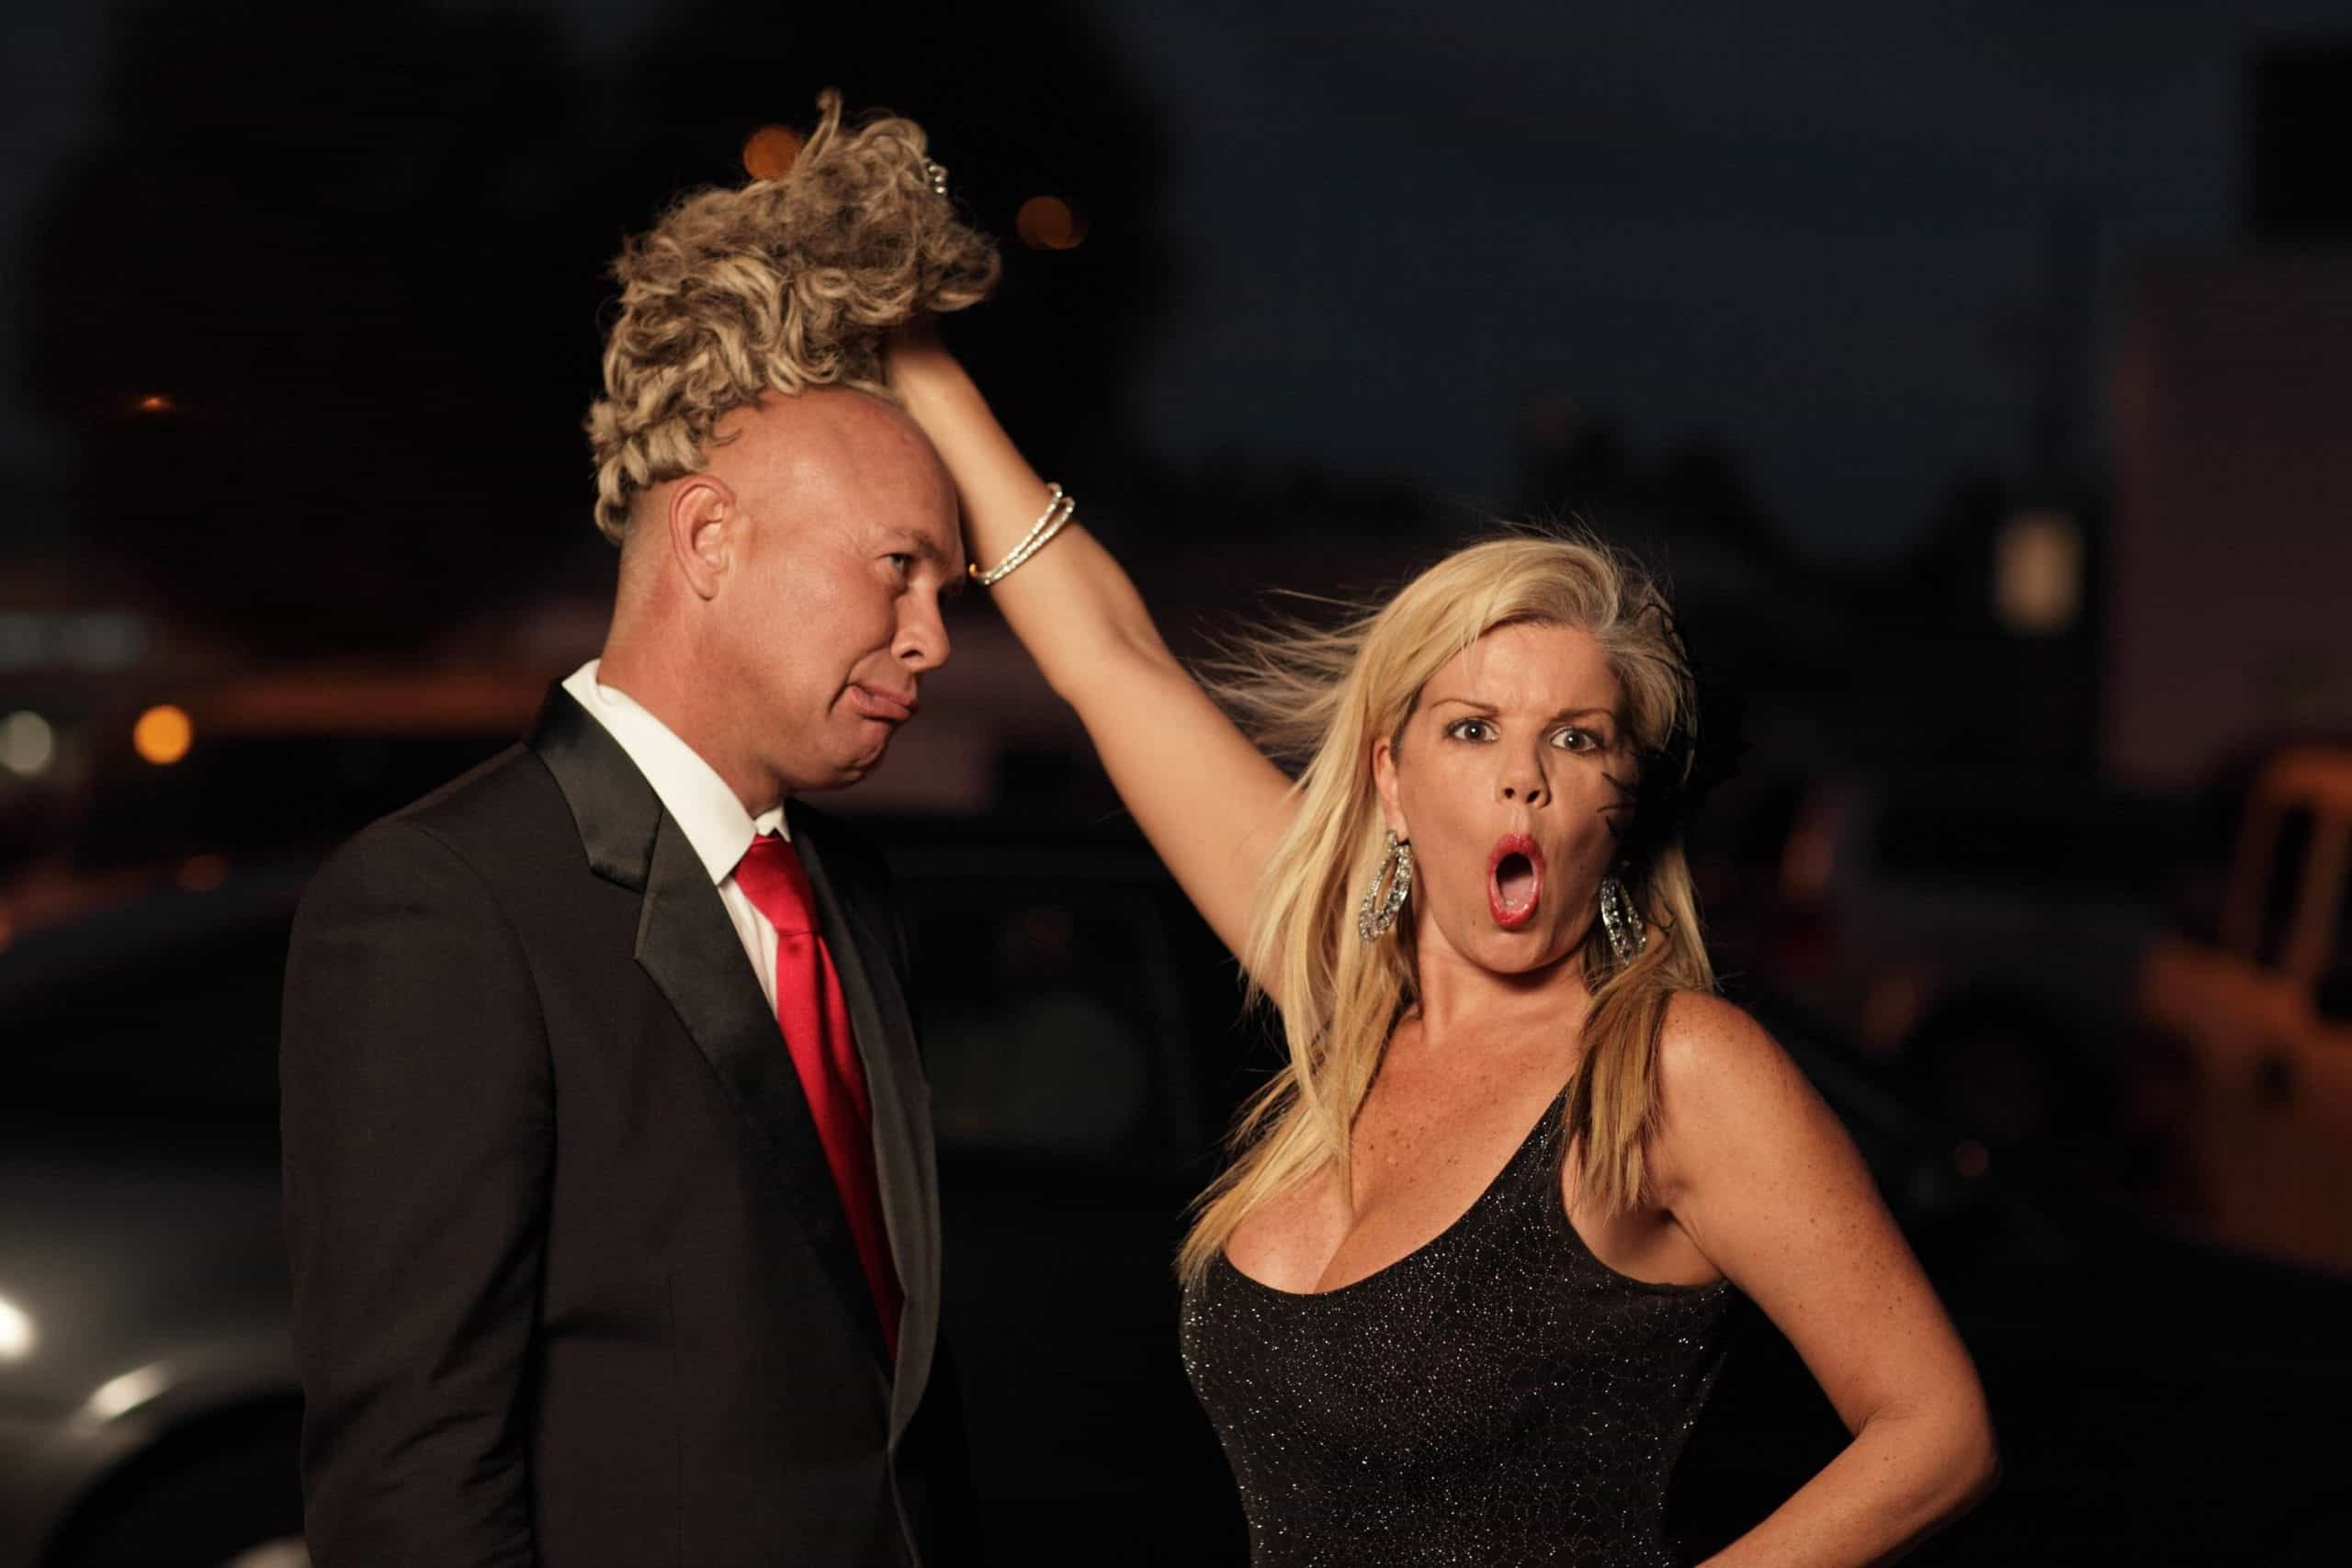 A male hairpiece or a toupee can be difficult to keep as a secret for prolonged periods of time.